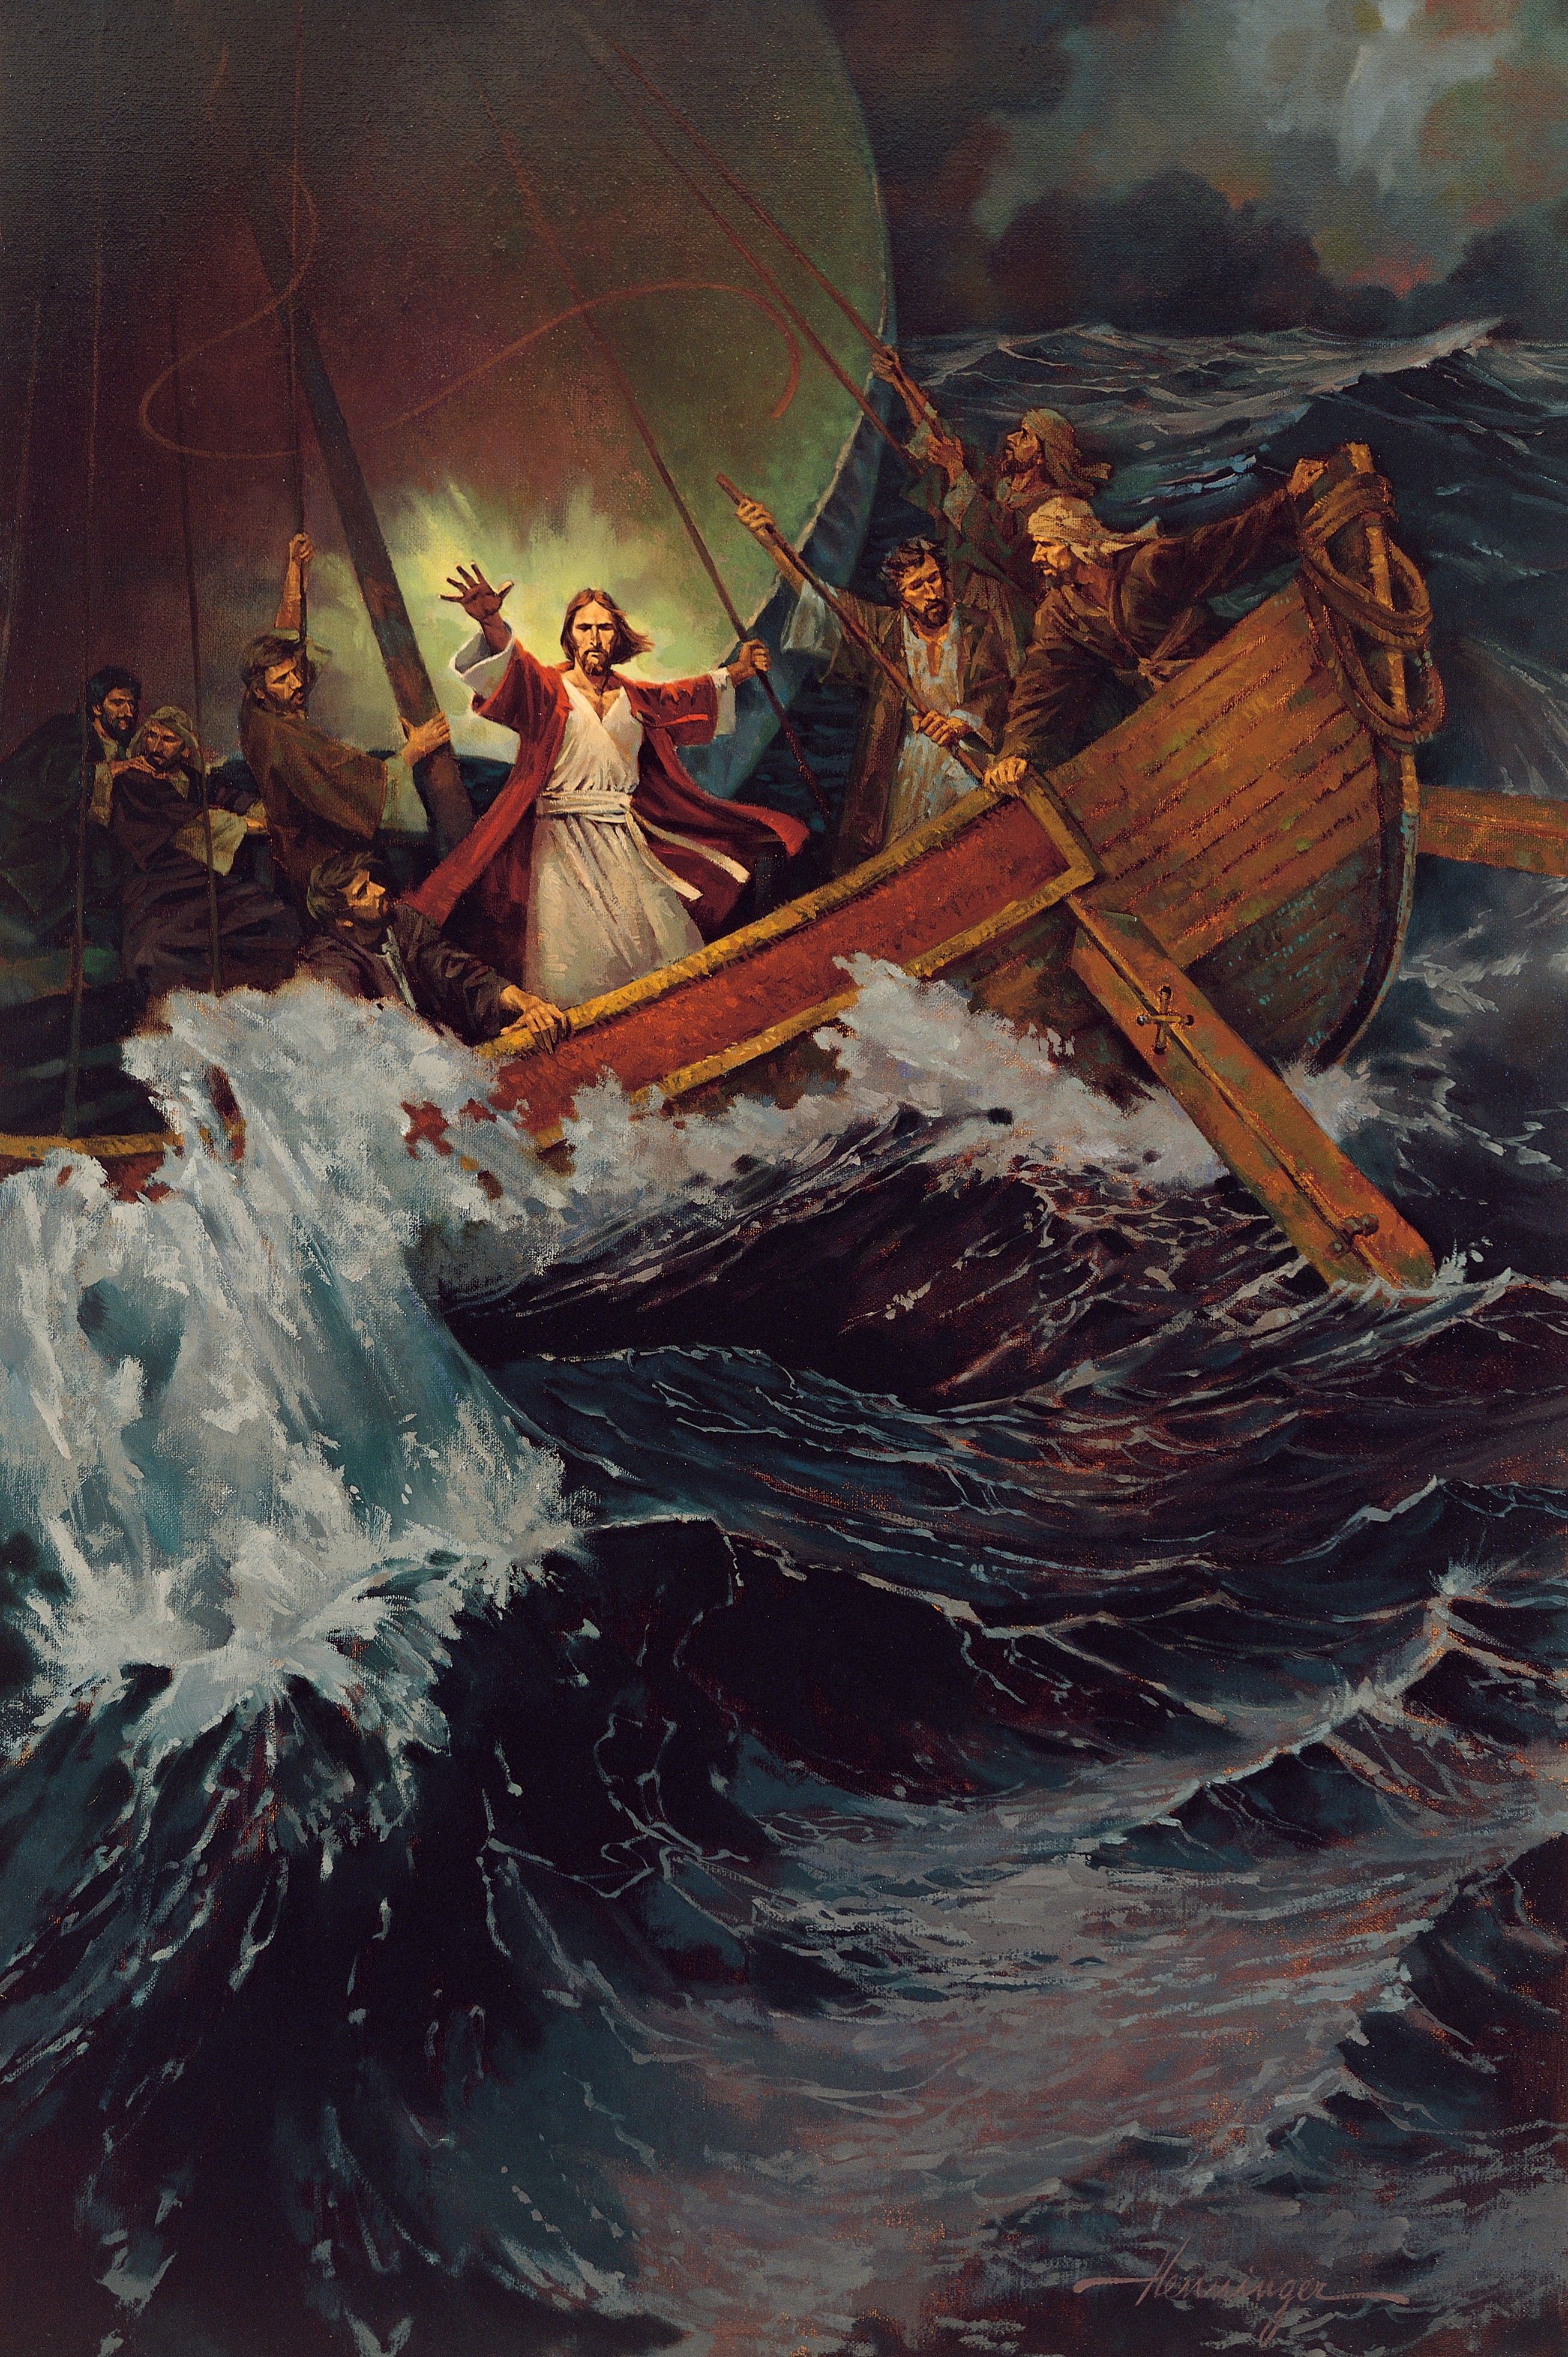 Stilling the Storm, by Ted Henninger (62139); GAK 214; Primary manual 2-28; Primary manual 7-15; Matthew 8:23–27; Mark 4:36–41; Luke 8:22–25